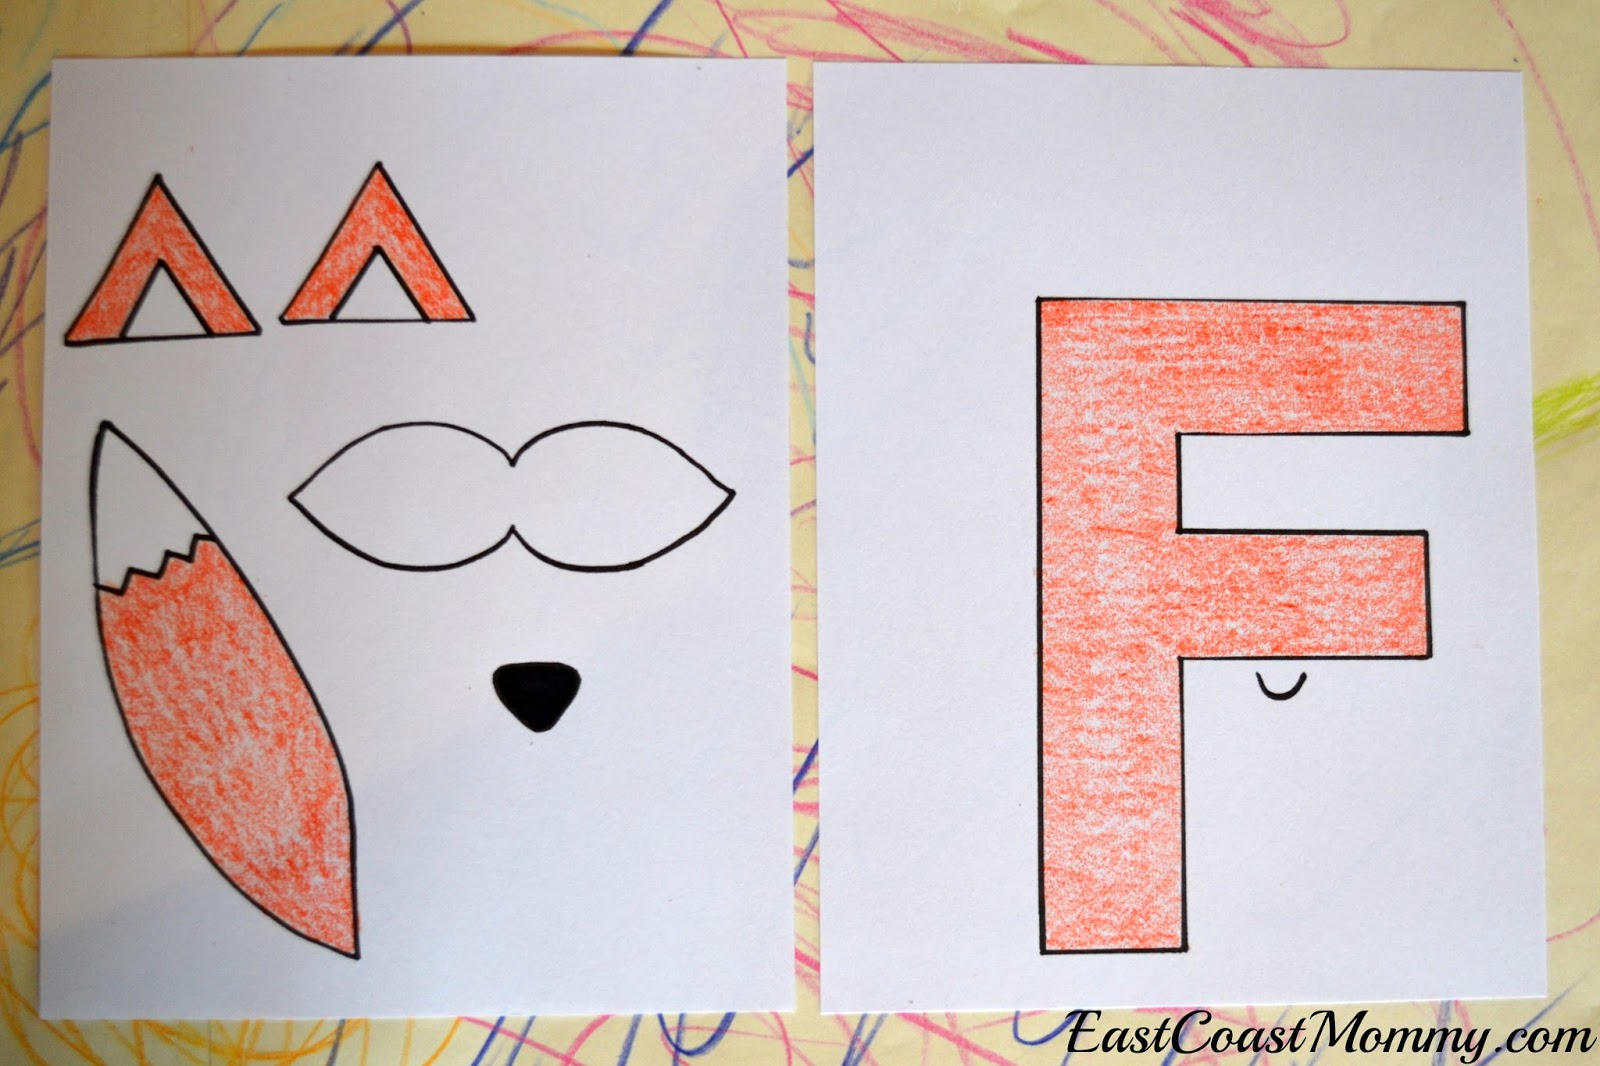 East Coast Mommy: Alphabet Crafts - Letter F